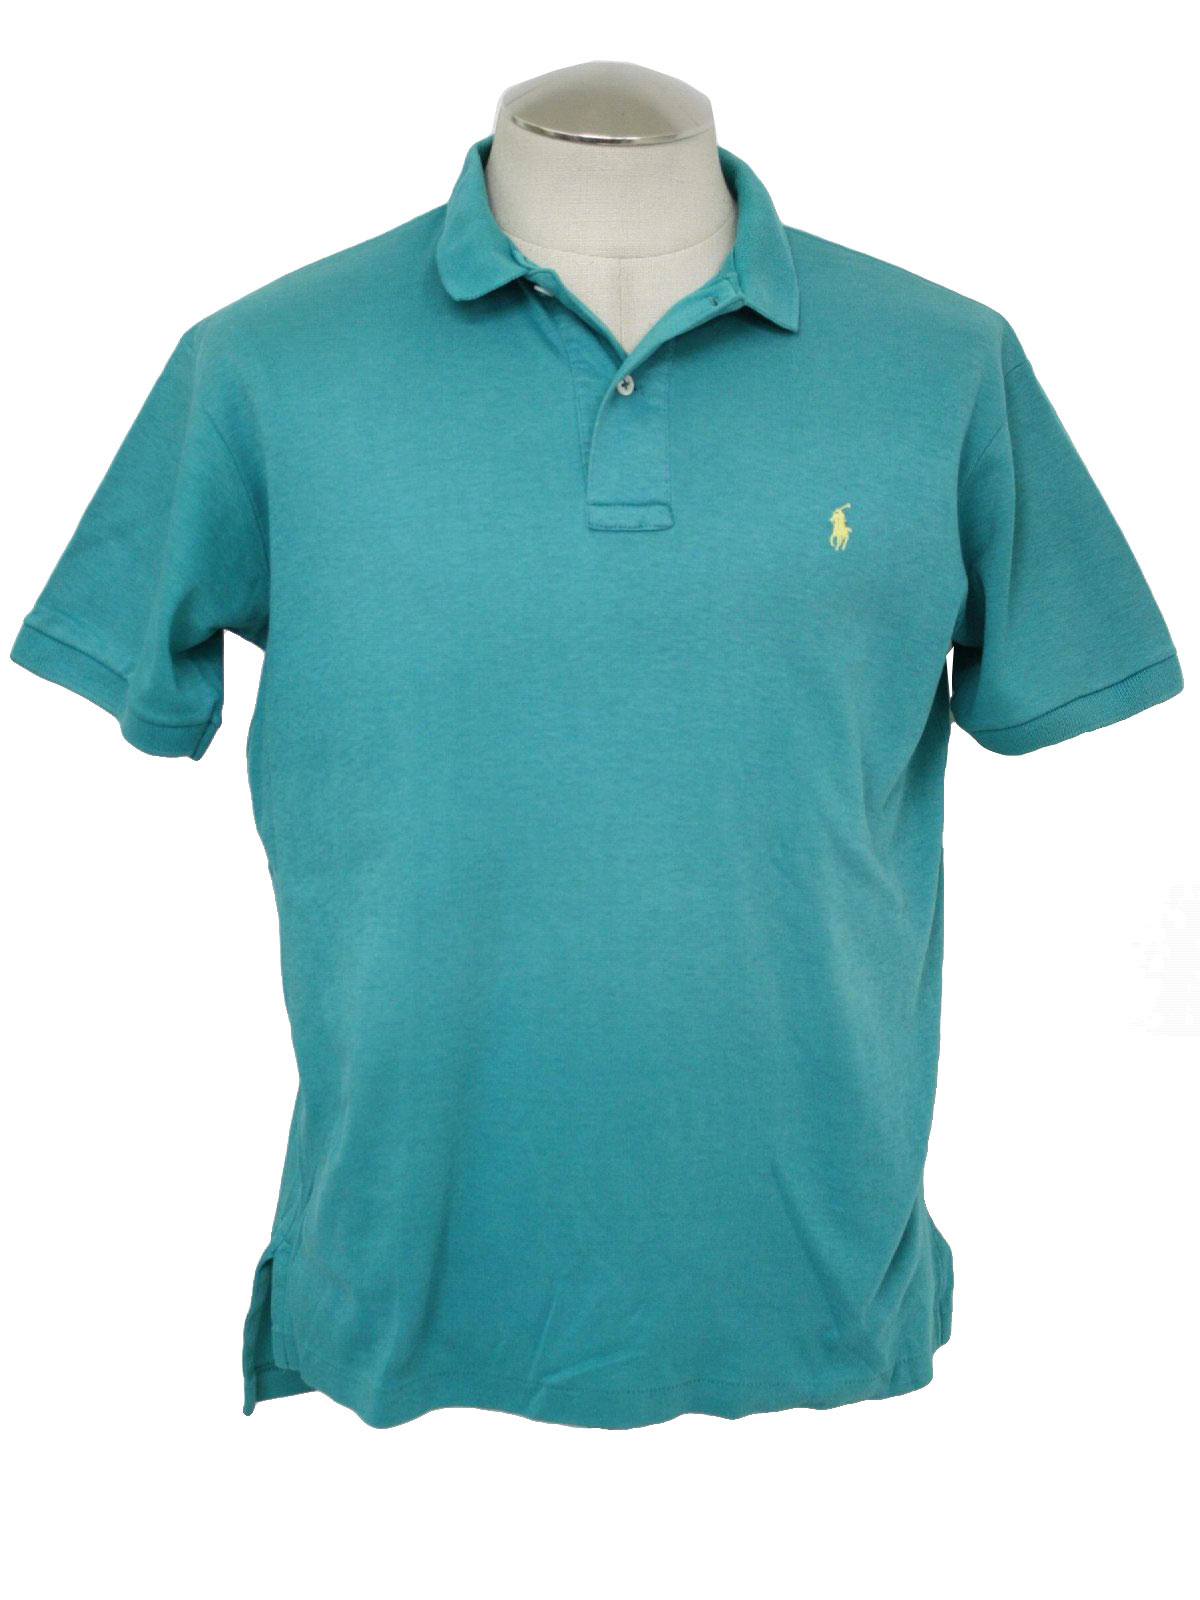 Retro 80 39 s shirt 80s polo by ralph lauren mens teal for Mens teal polo shirt